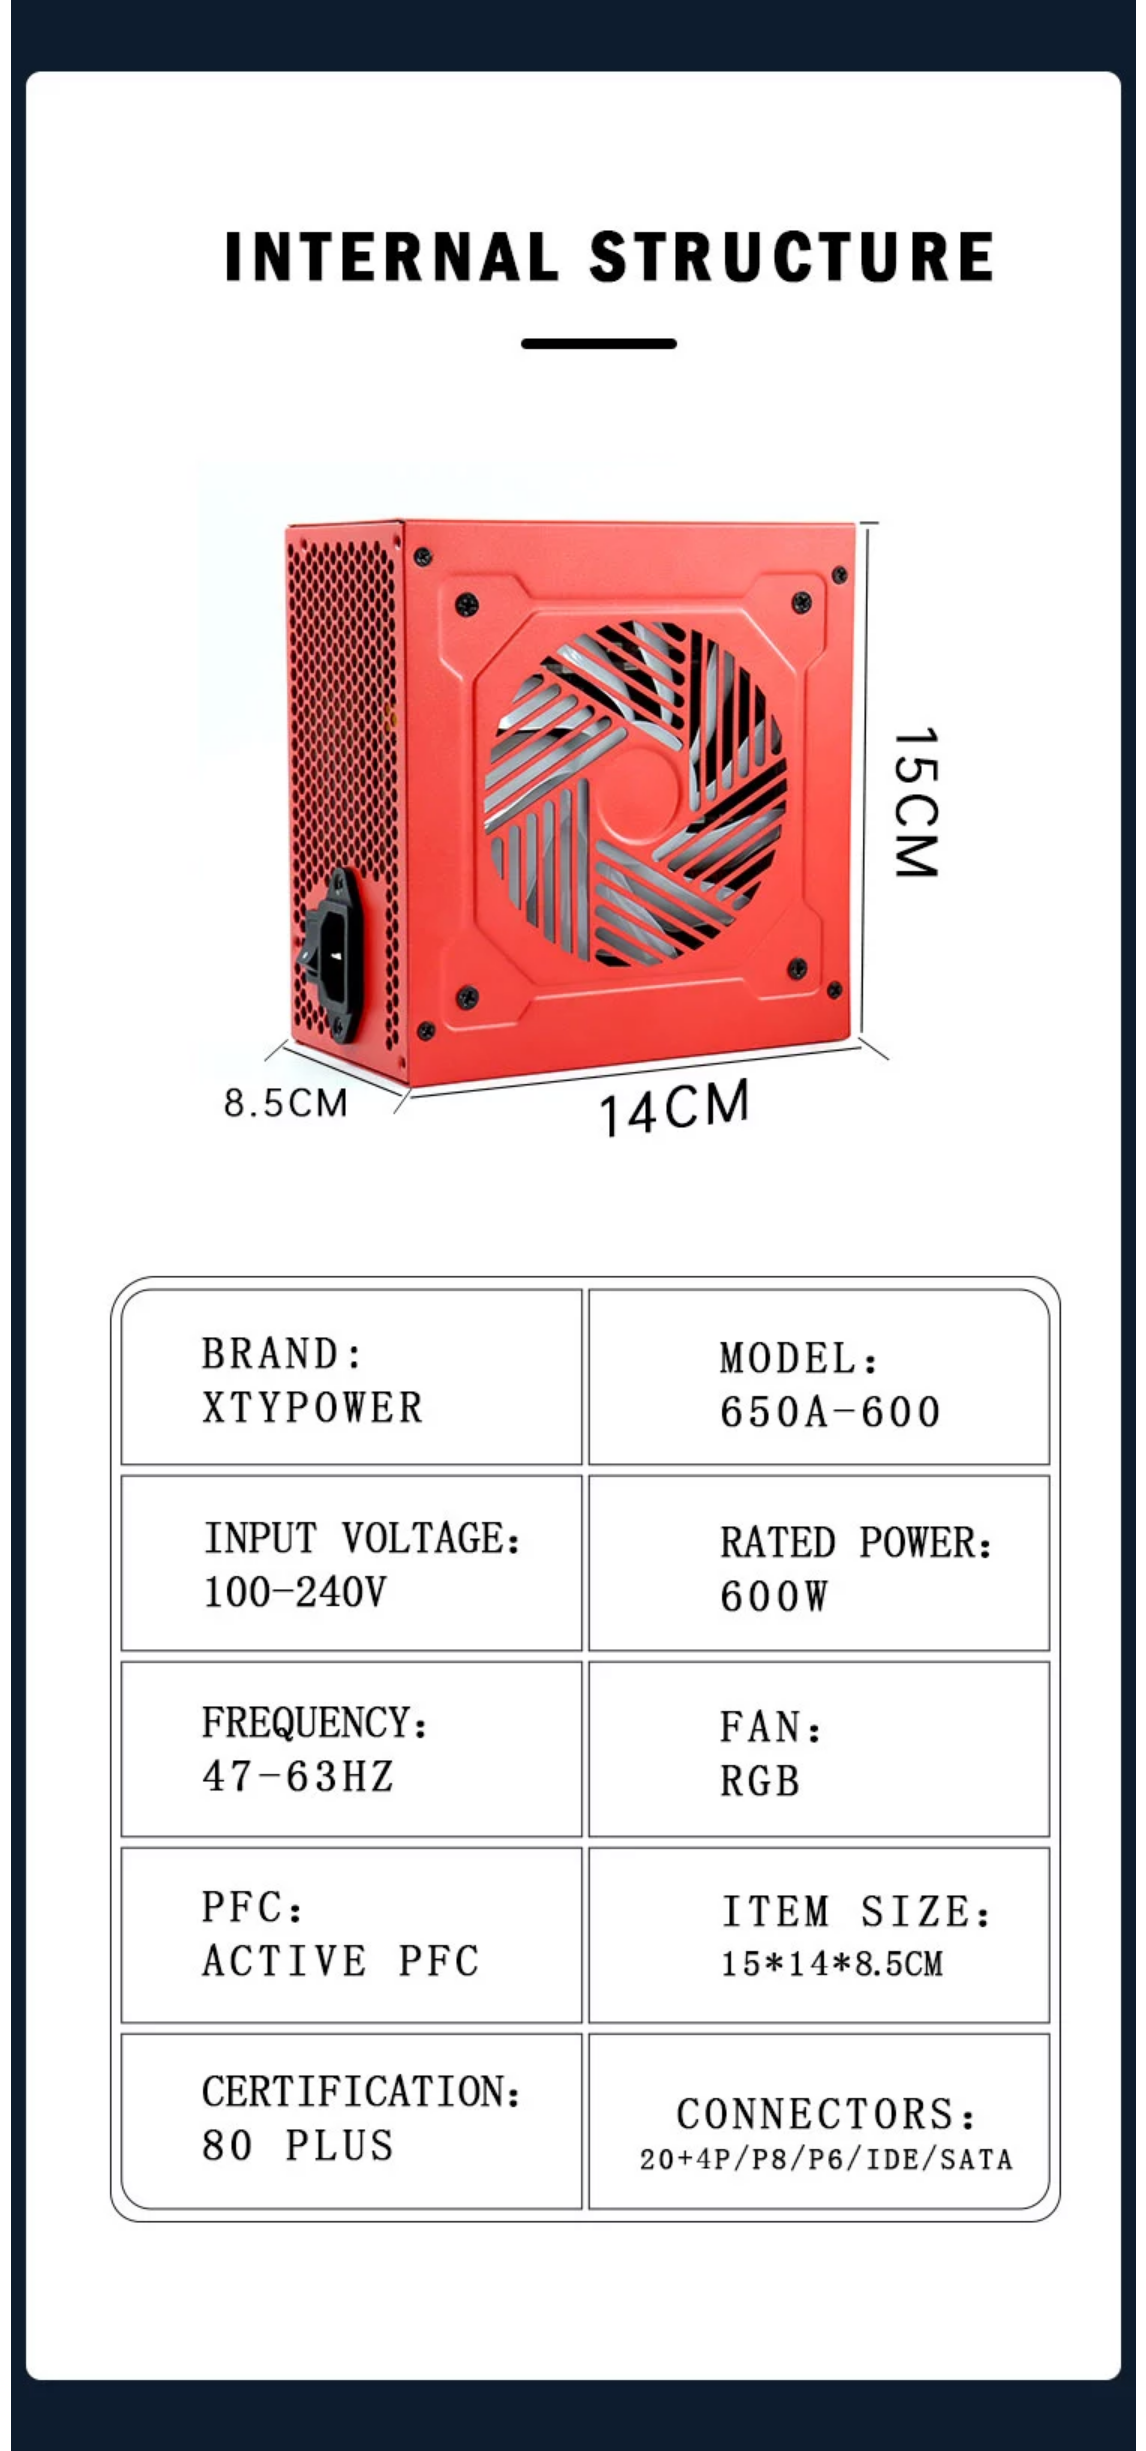 ATX-80plus-bronze-computer-power-600w-rgb-fan-powe_05